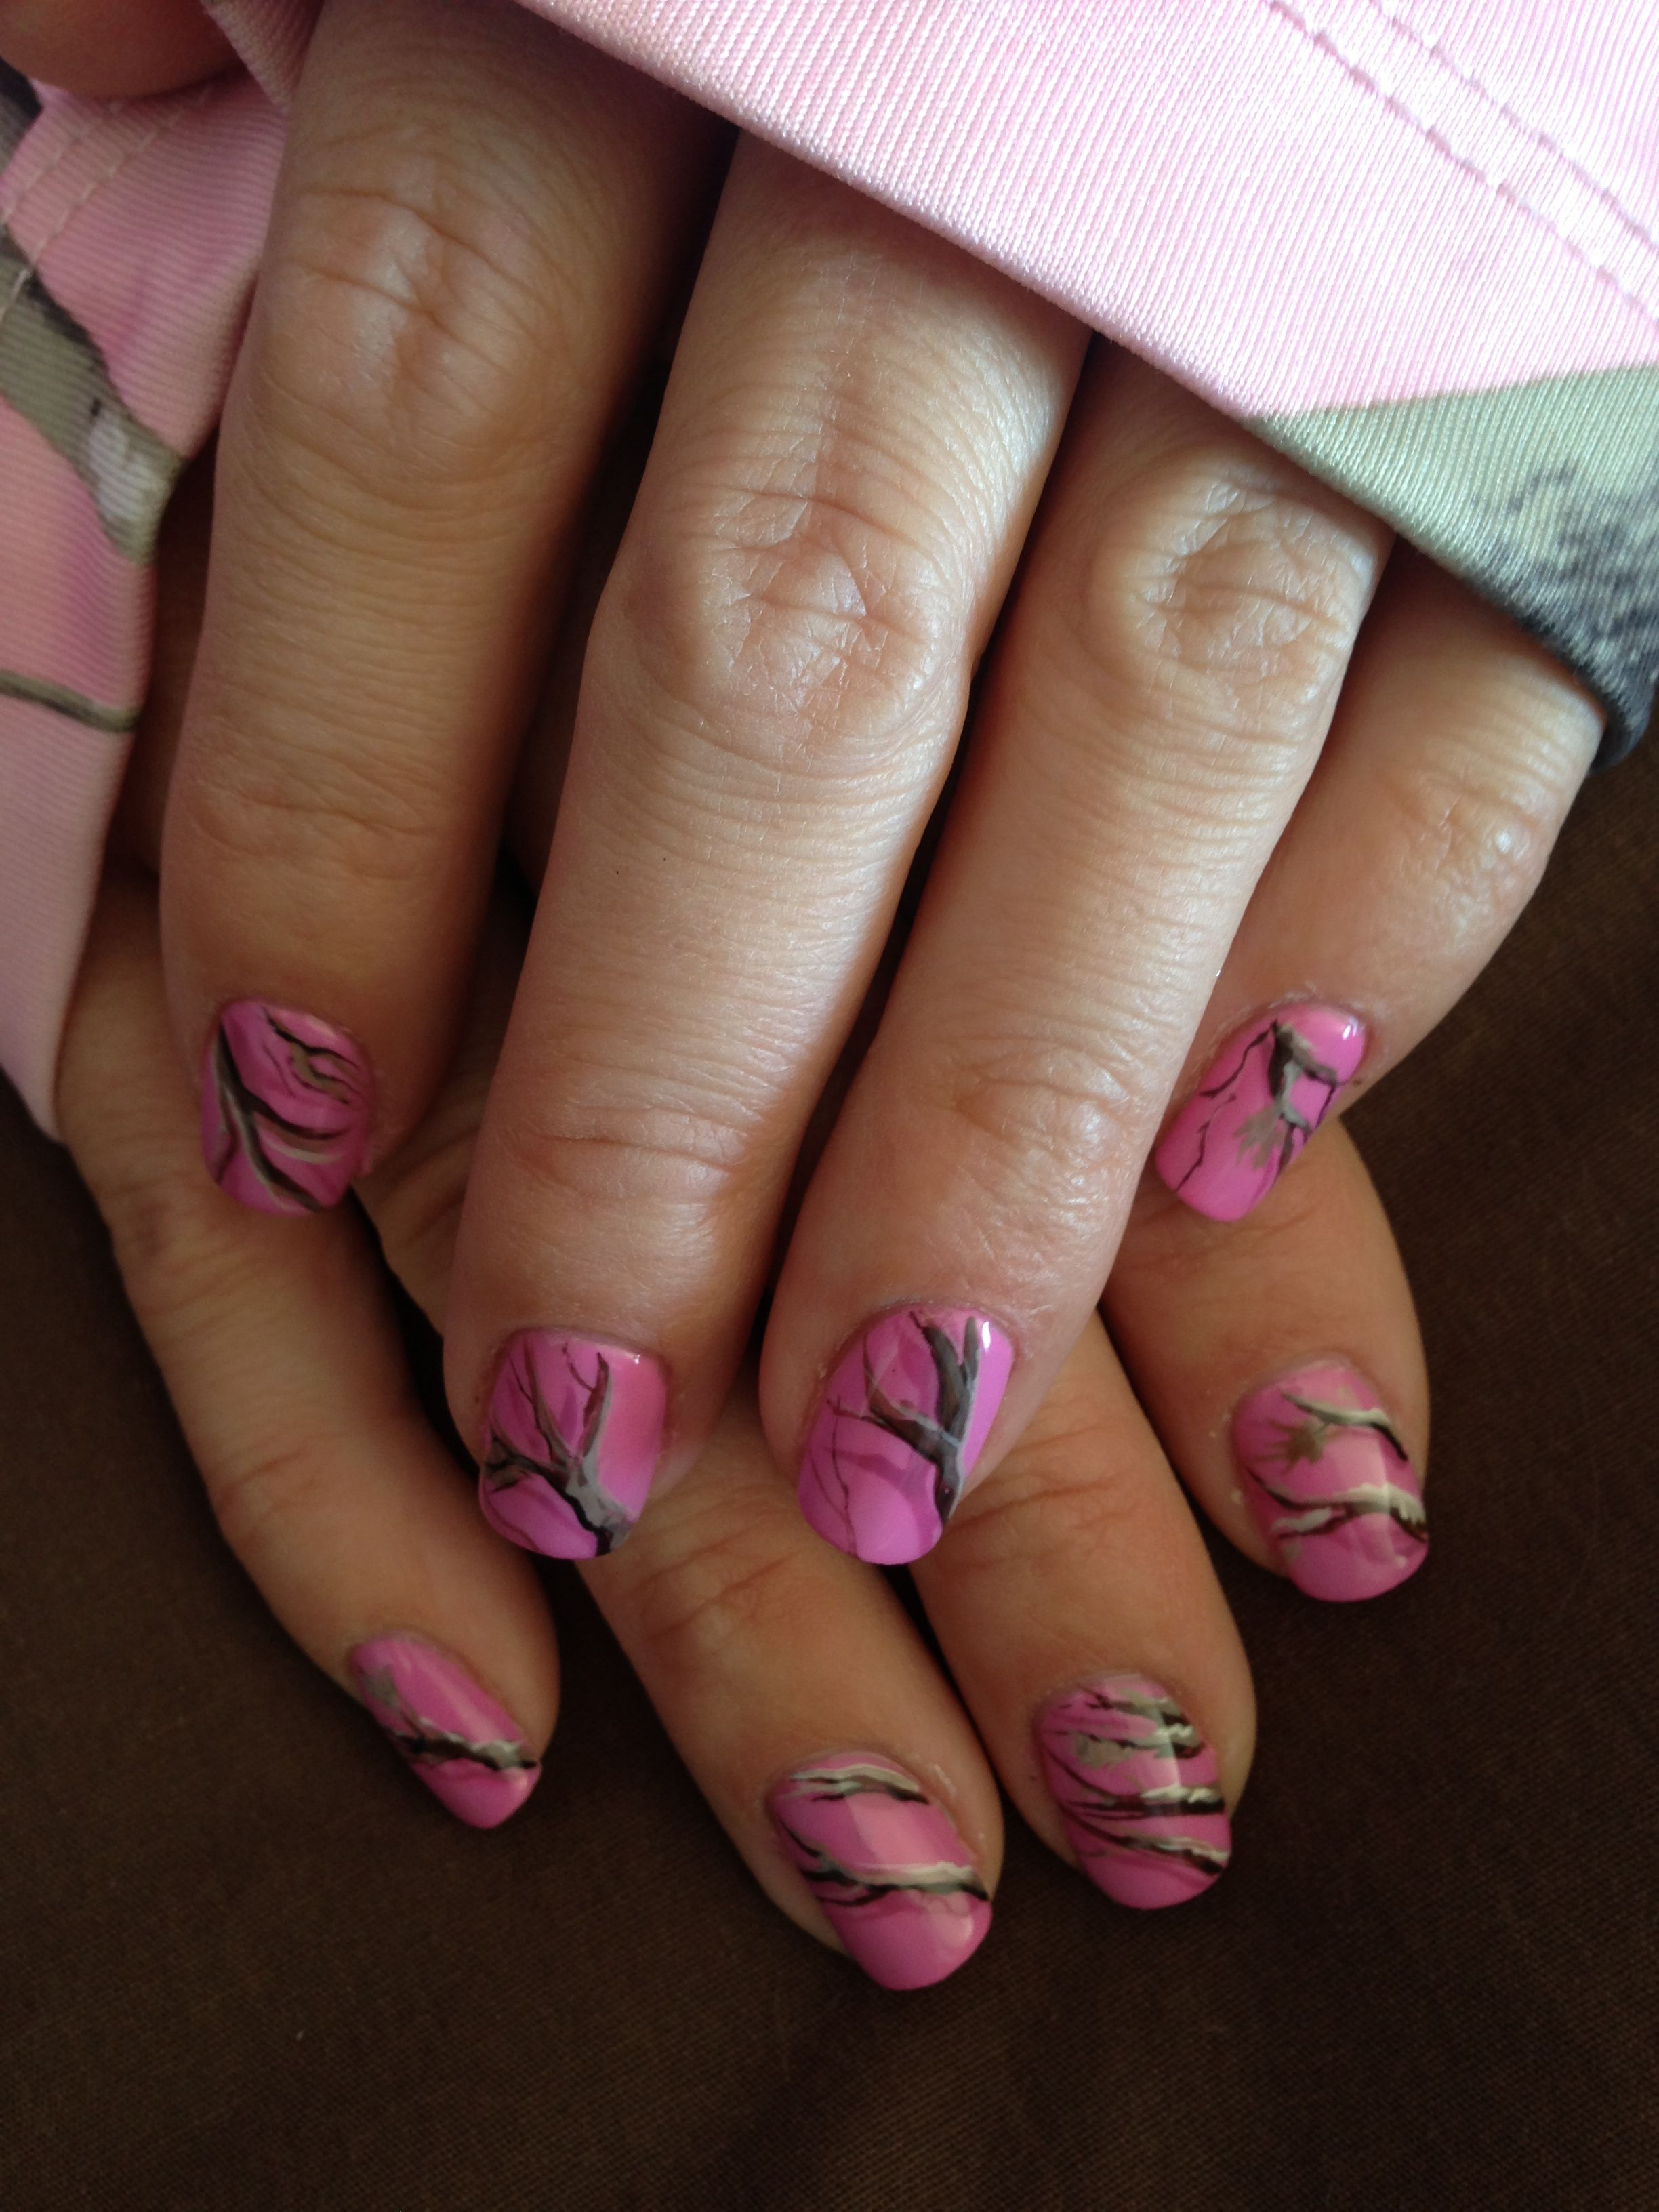 Pink Camo Nails Ooh La La Pinterest Pink Camo Nails Camo